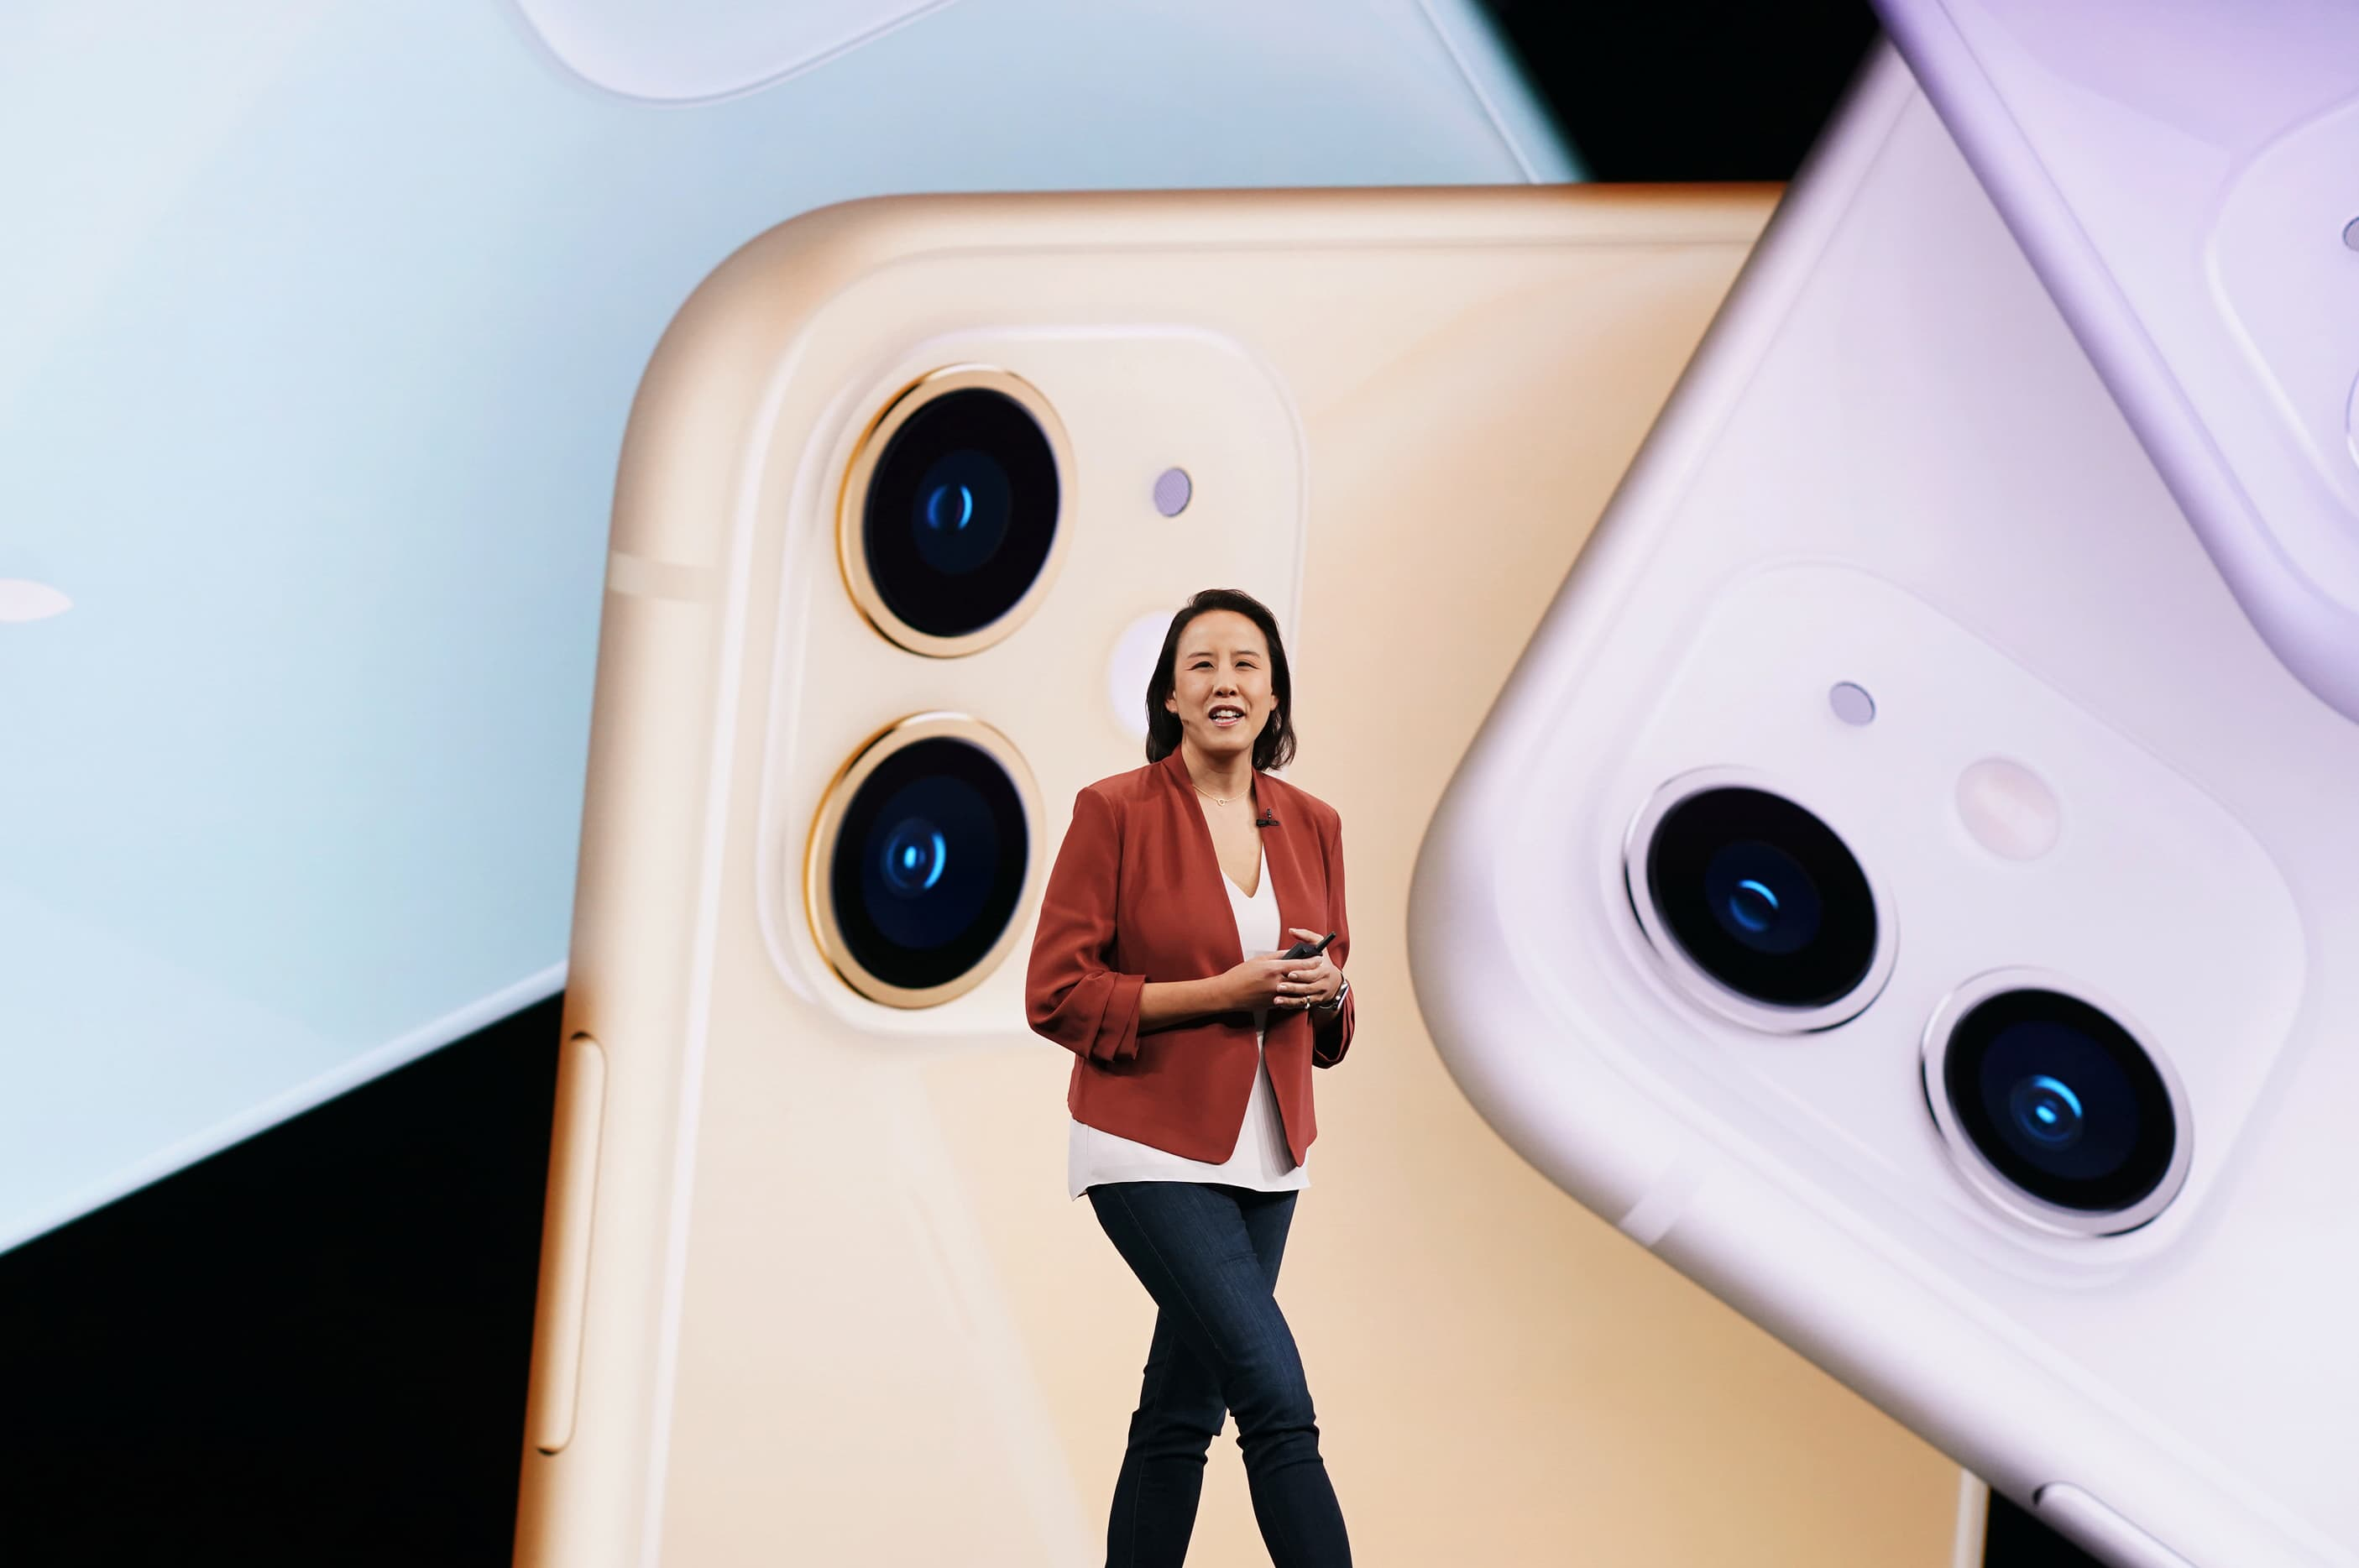 Apple marketing exec Kaiann Drance shows off the iPhone 11 during the By Innovation Only event.